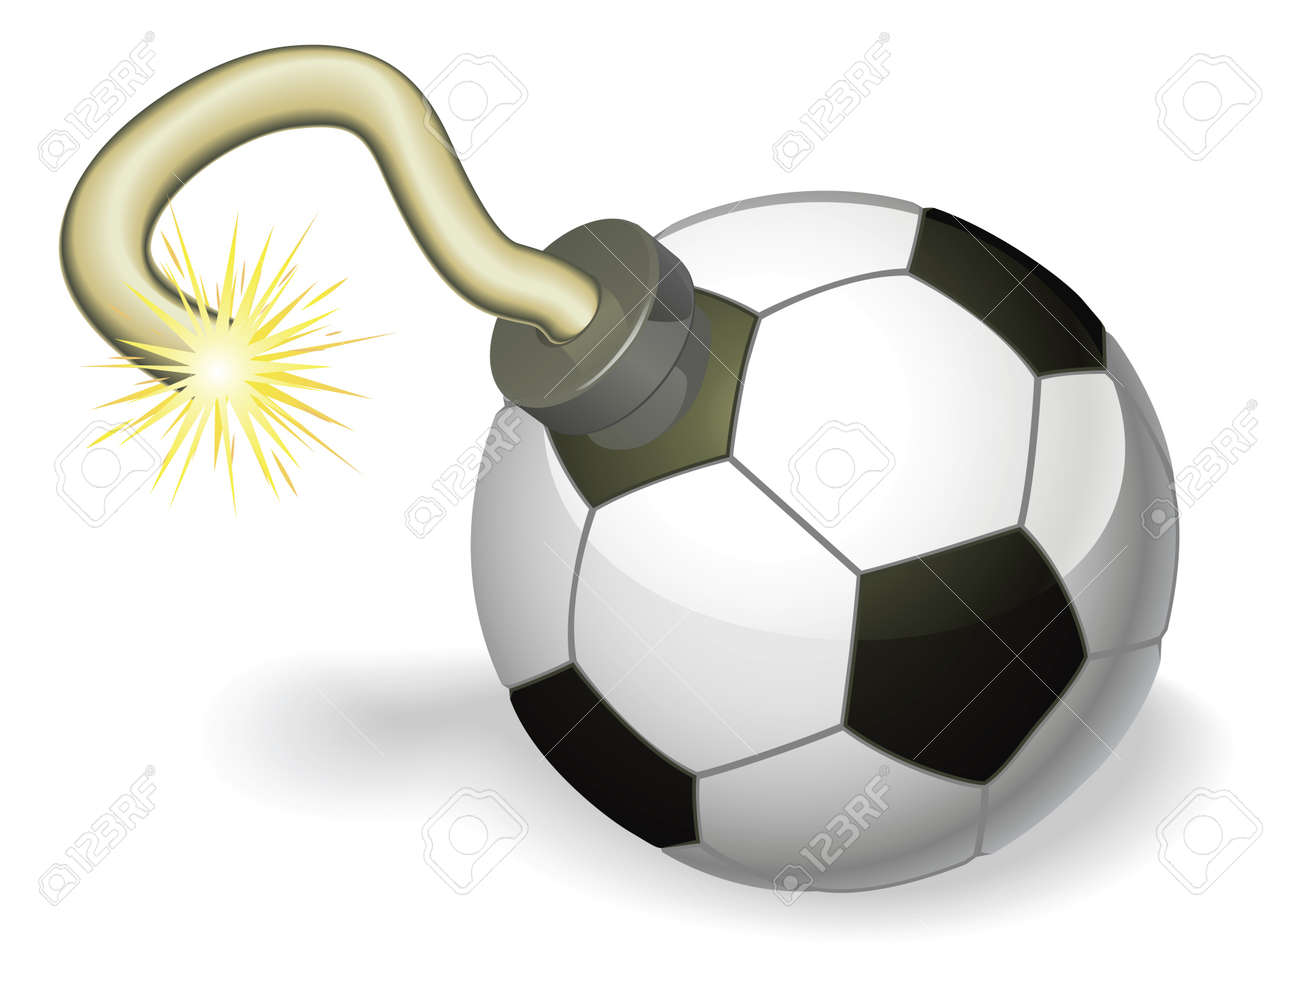 Retro cartoon soccer ball cherry bomb with lit fuse burning down. Concept for countdown to big football event or crisis. Stock Vector - 9851535